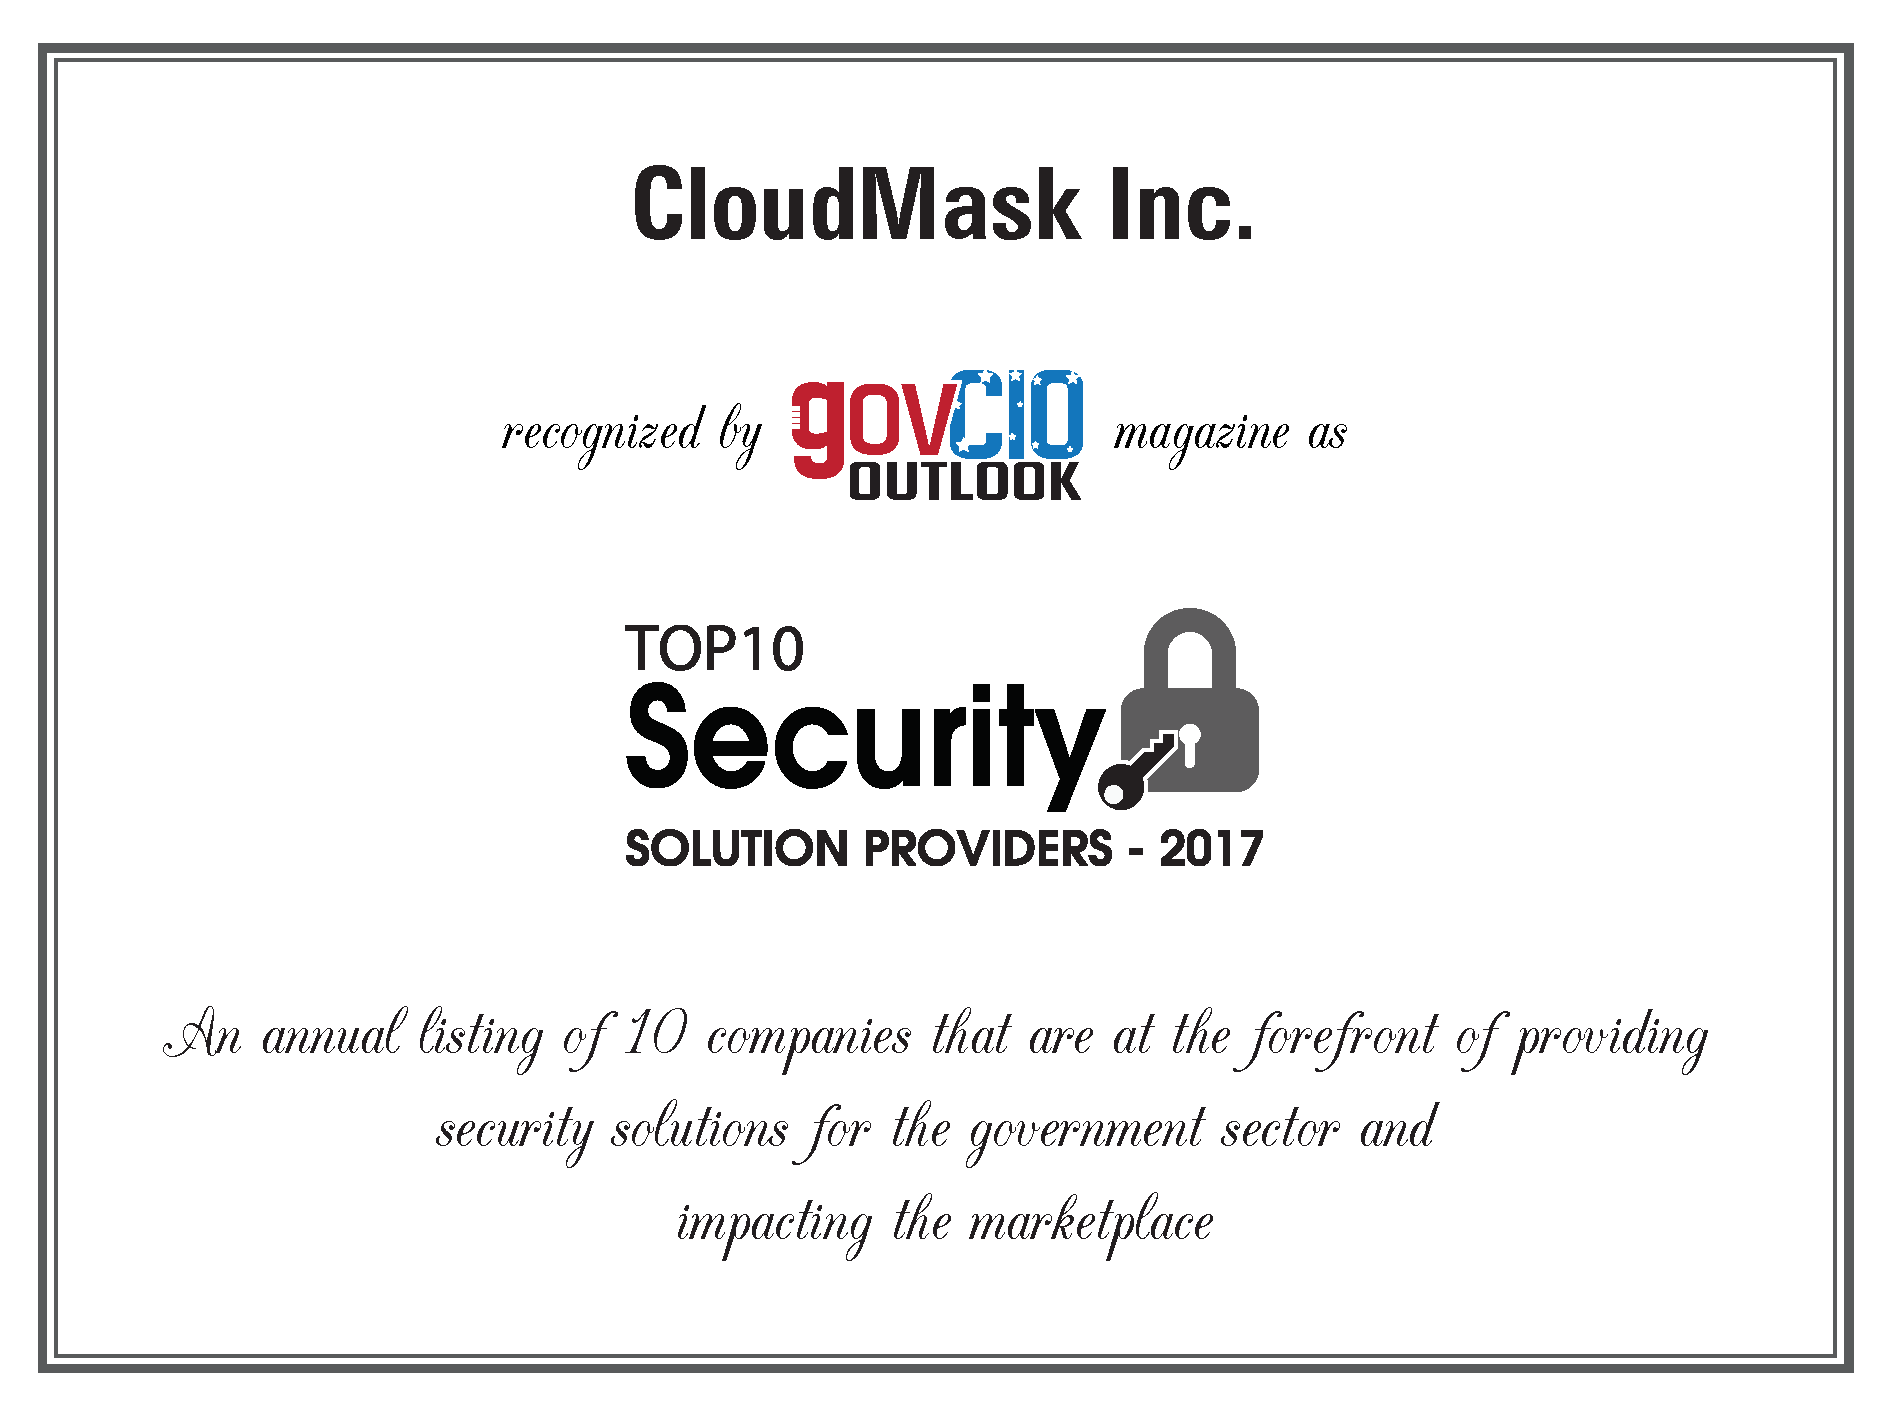 CloudMask Named to Gov CIO Outlook's Top 10 Security Solution Providers 2017